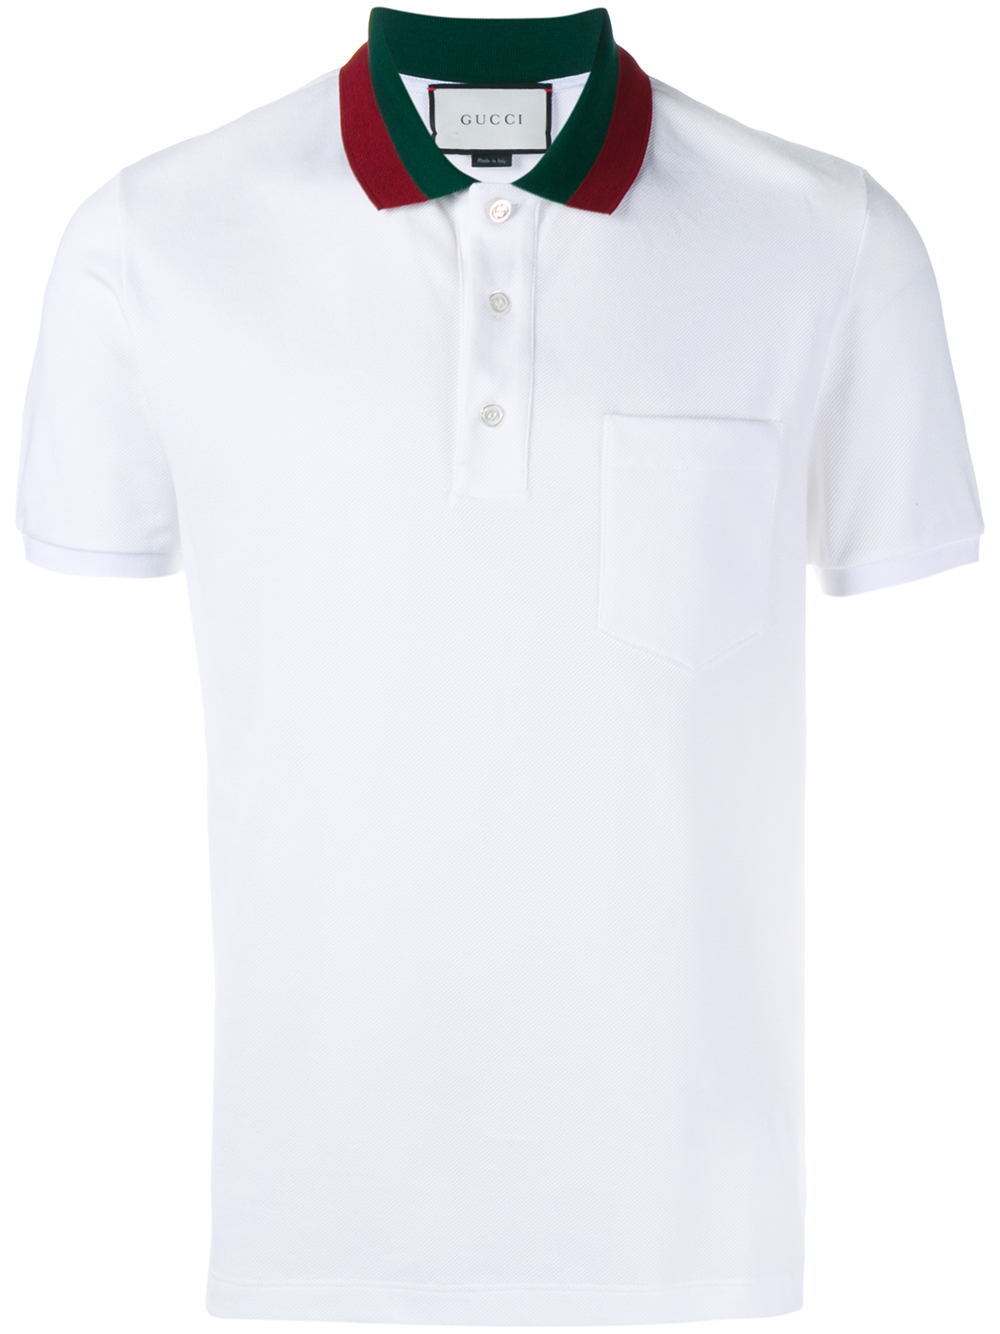 Lyst - Gucci Striped Collar Polo T-shirt in White for Men